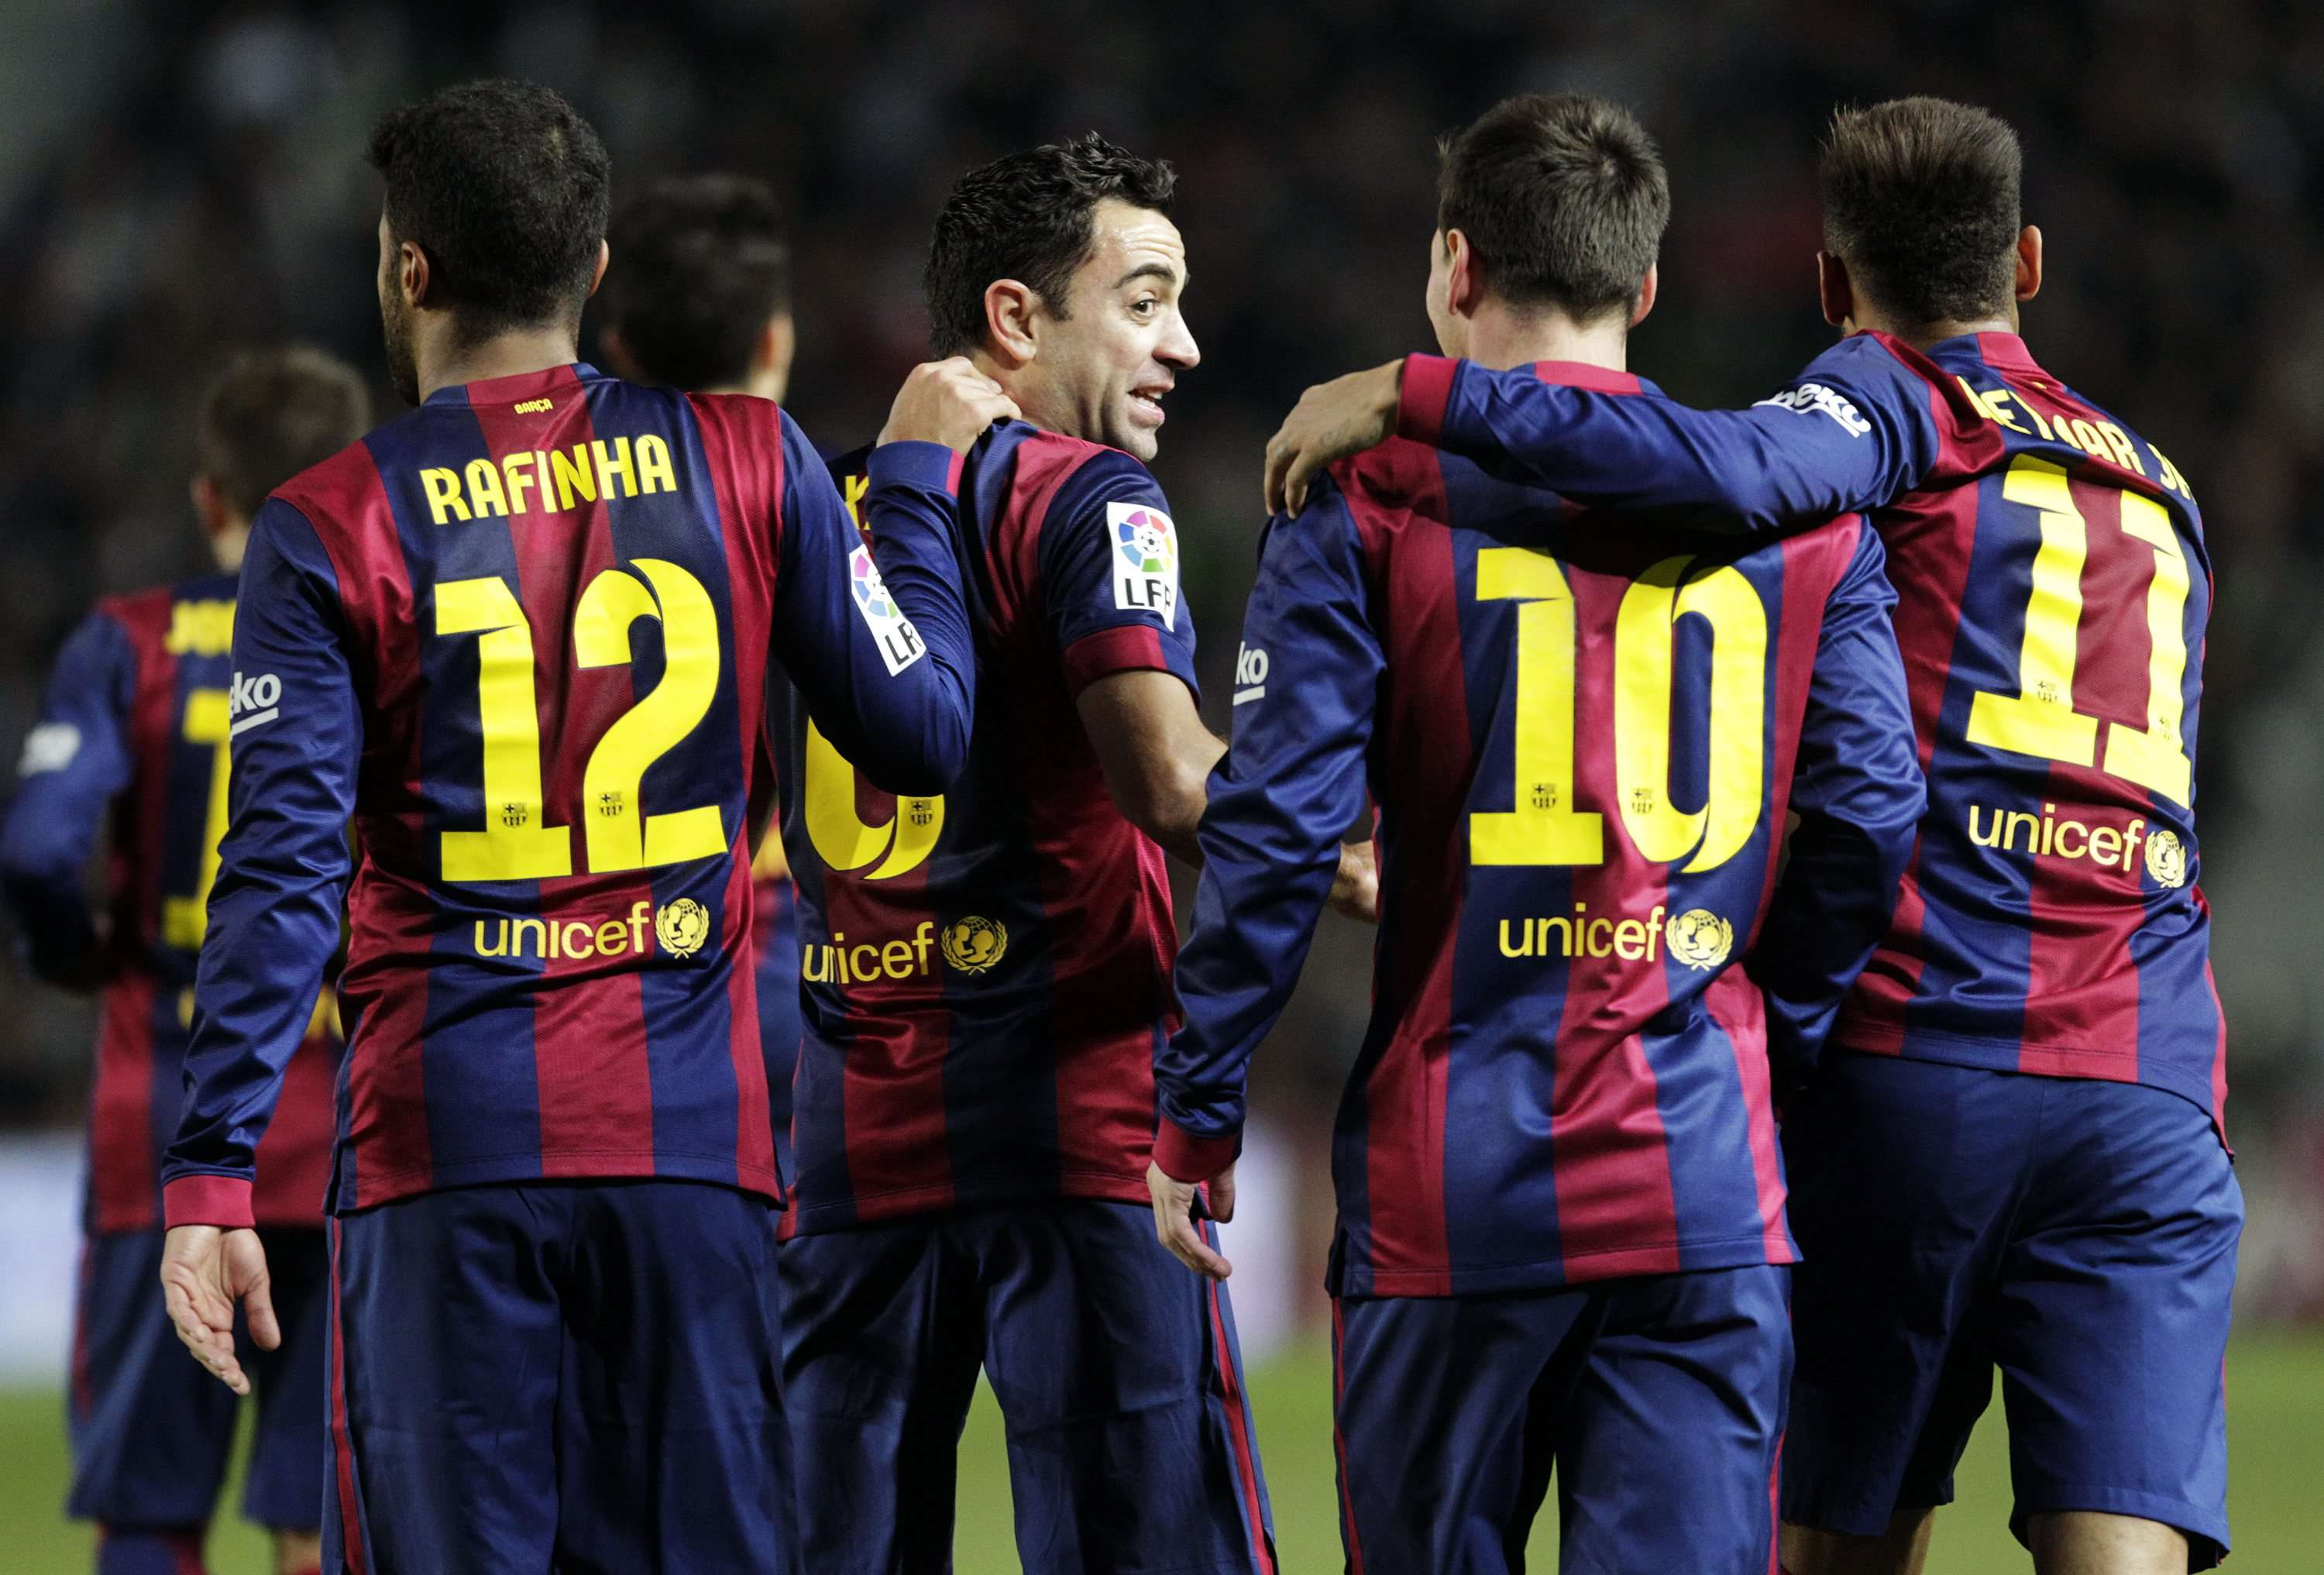 Barcelona's players celebrate after they scored a goal against Elche during their Spanish first division soccer match at Martinez Valero stadium in Elche January 24, 2015. REUTERS/Heino Kalis (SPAIN - Tags: SPORT SOCCER) Foto: HEINO KALIS/REUTERS